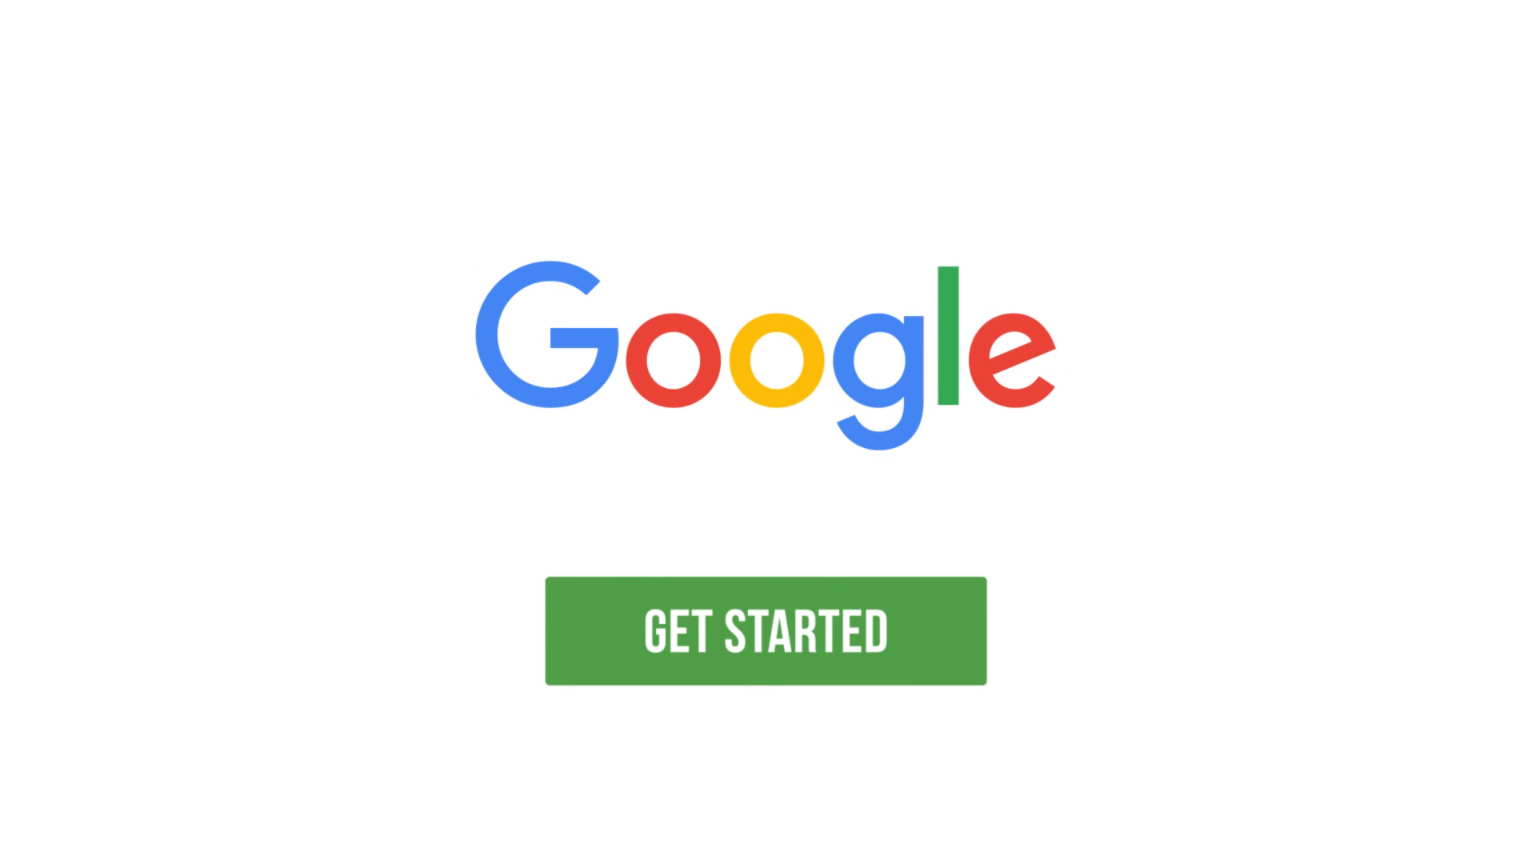 Google My Business Product Overview